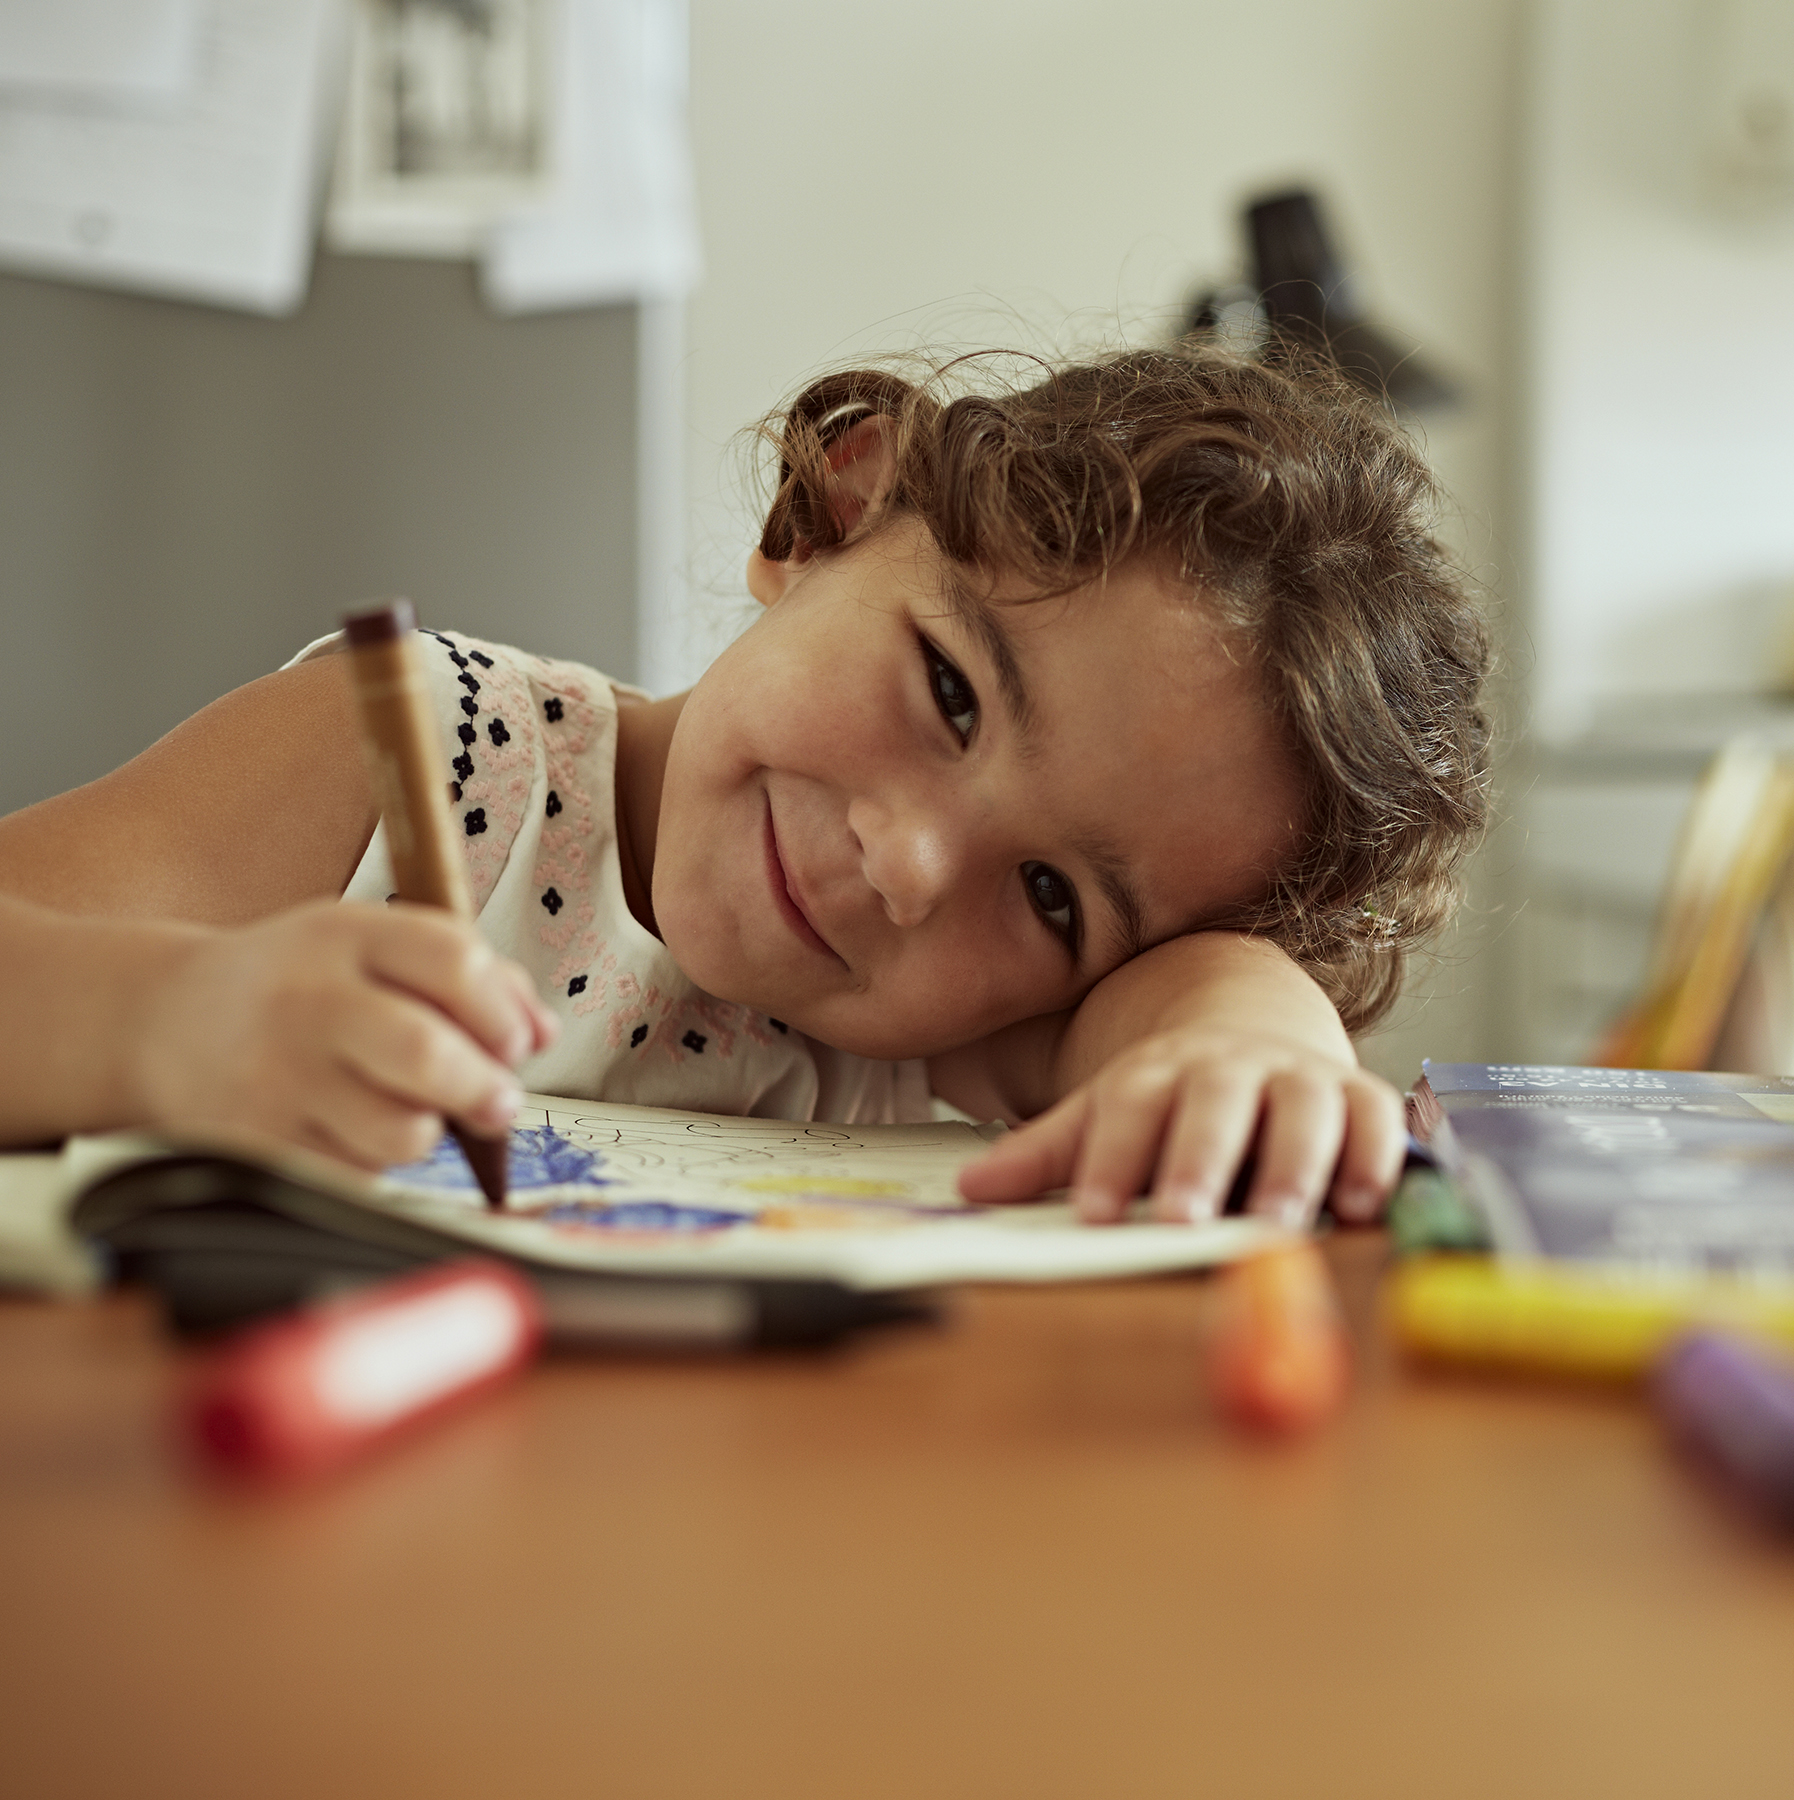 Child drawing in kitchen